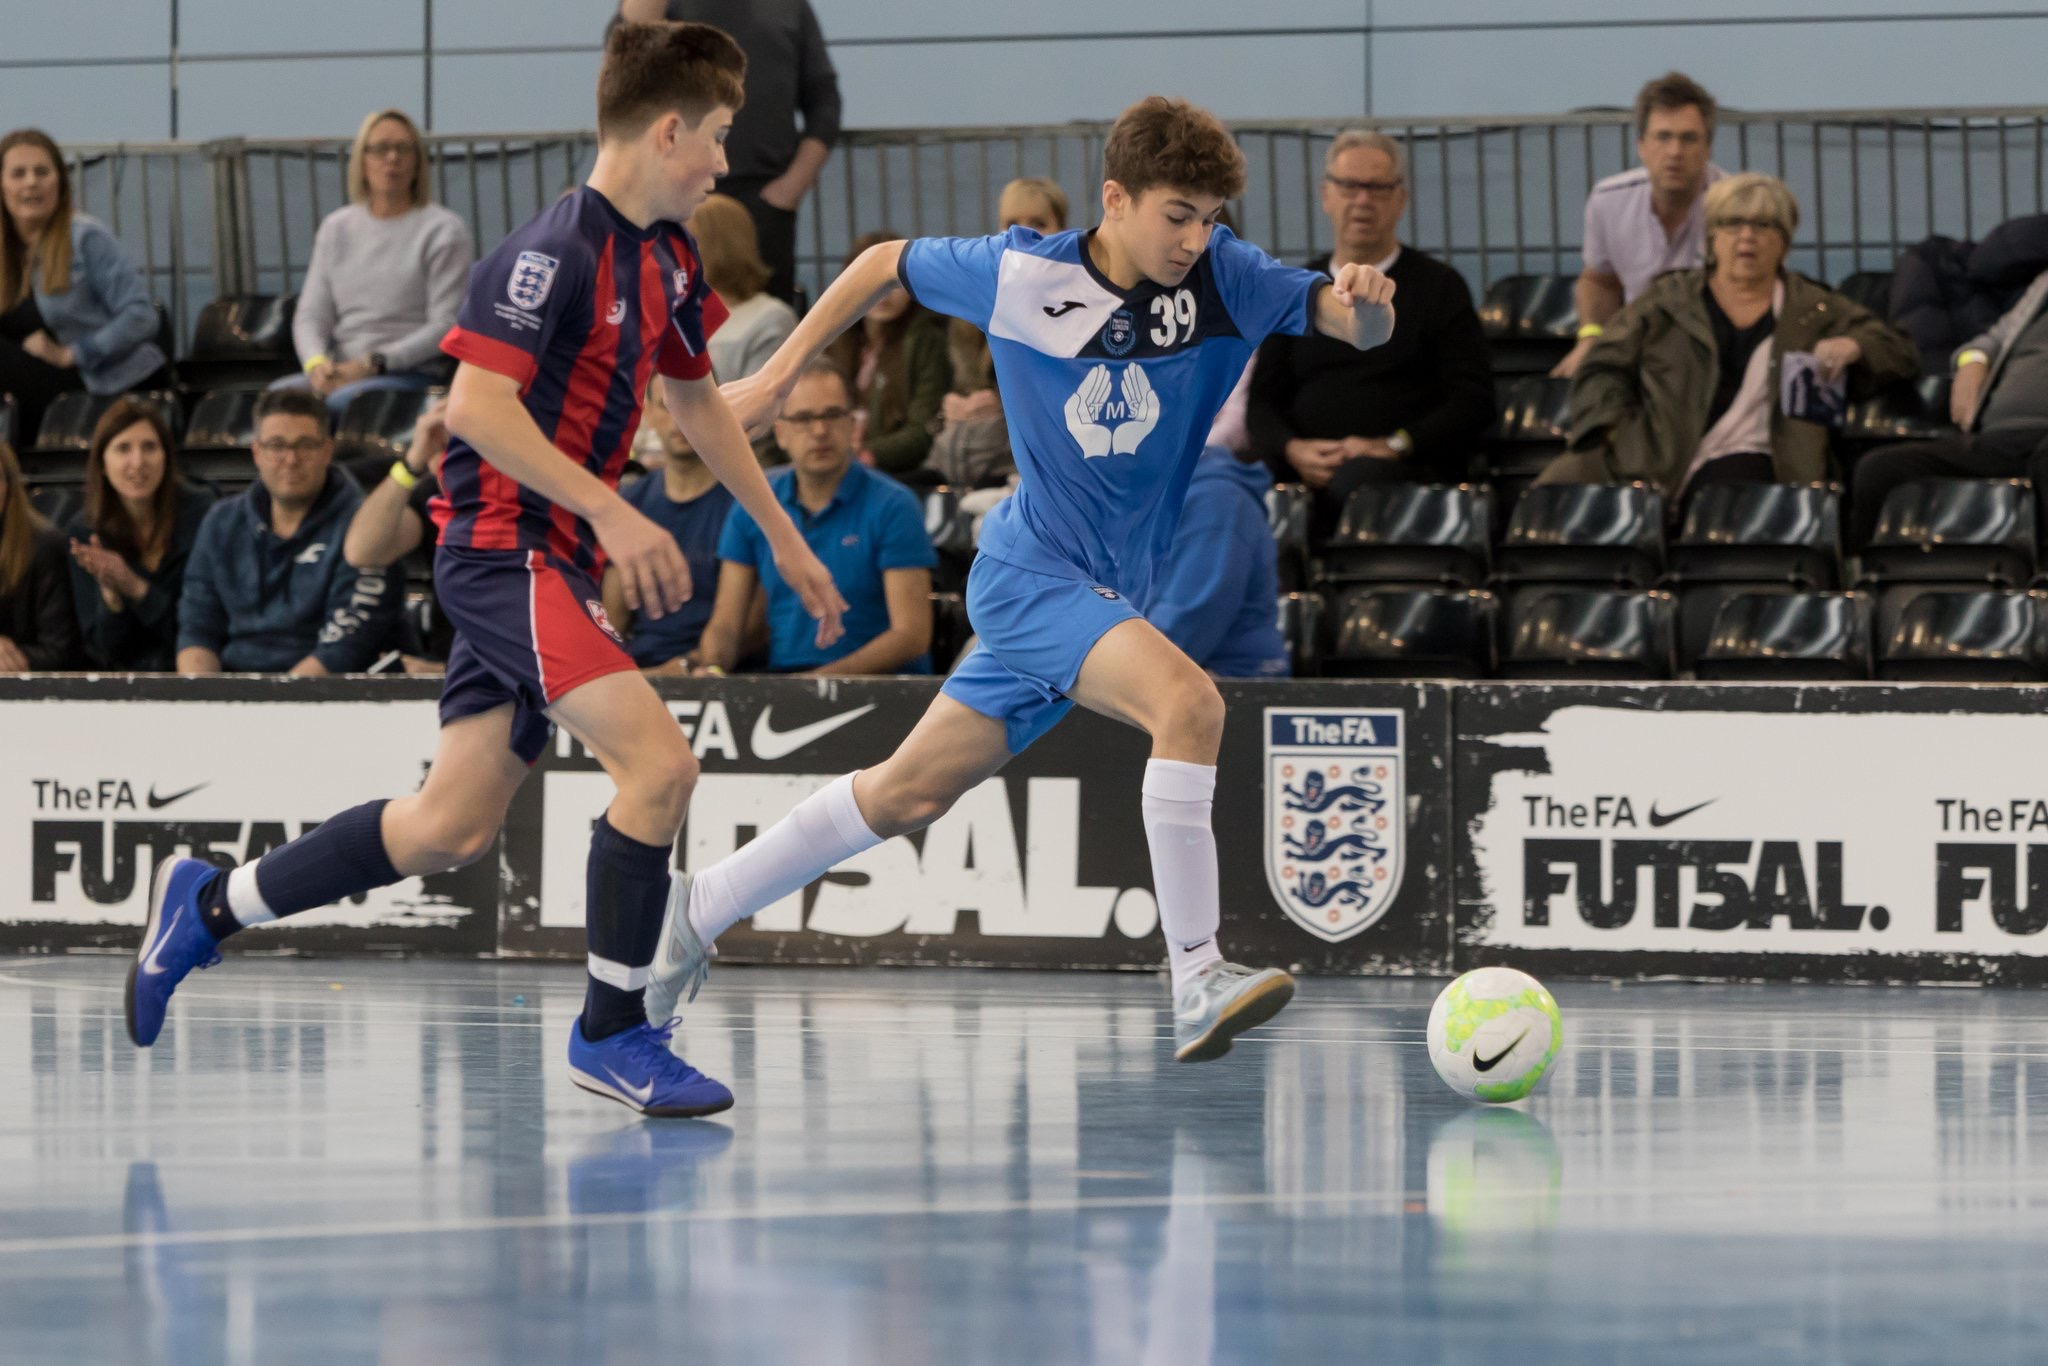 Pro Futsal London, St Georges Park National Finals 2019